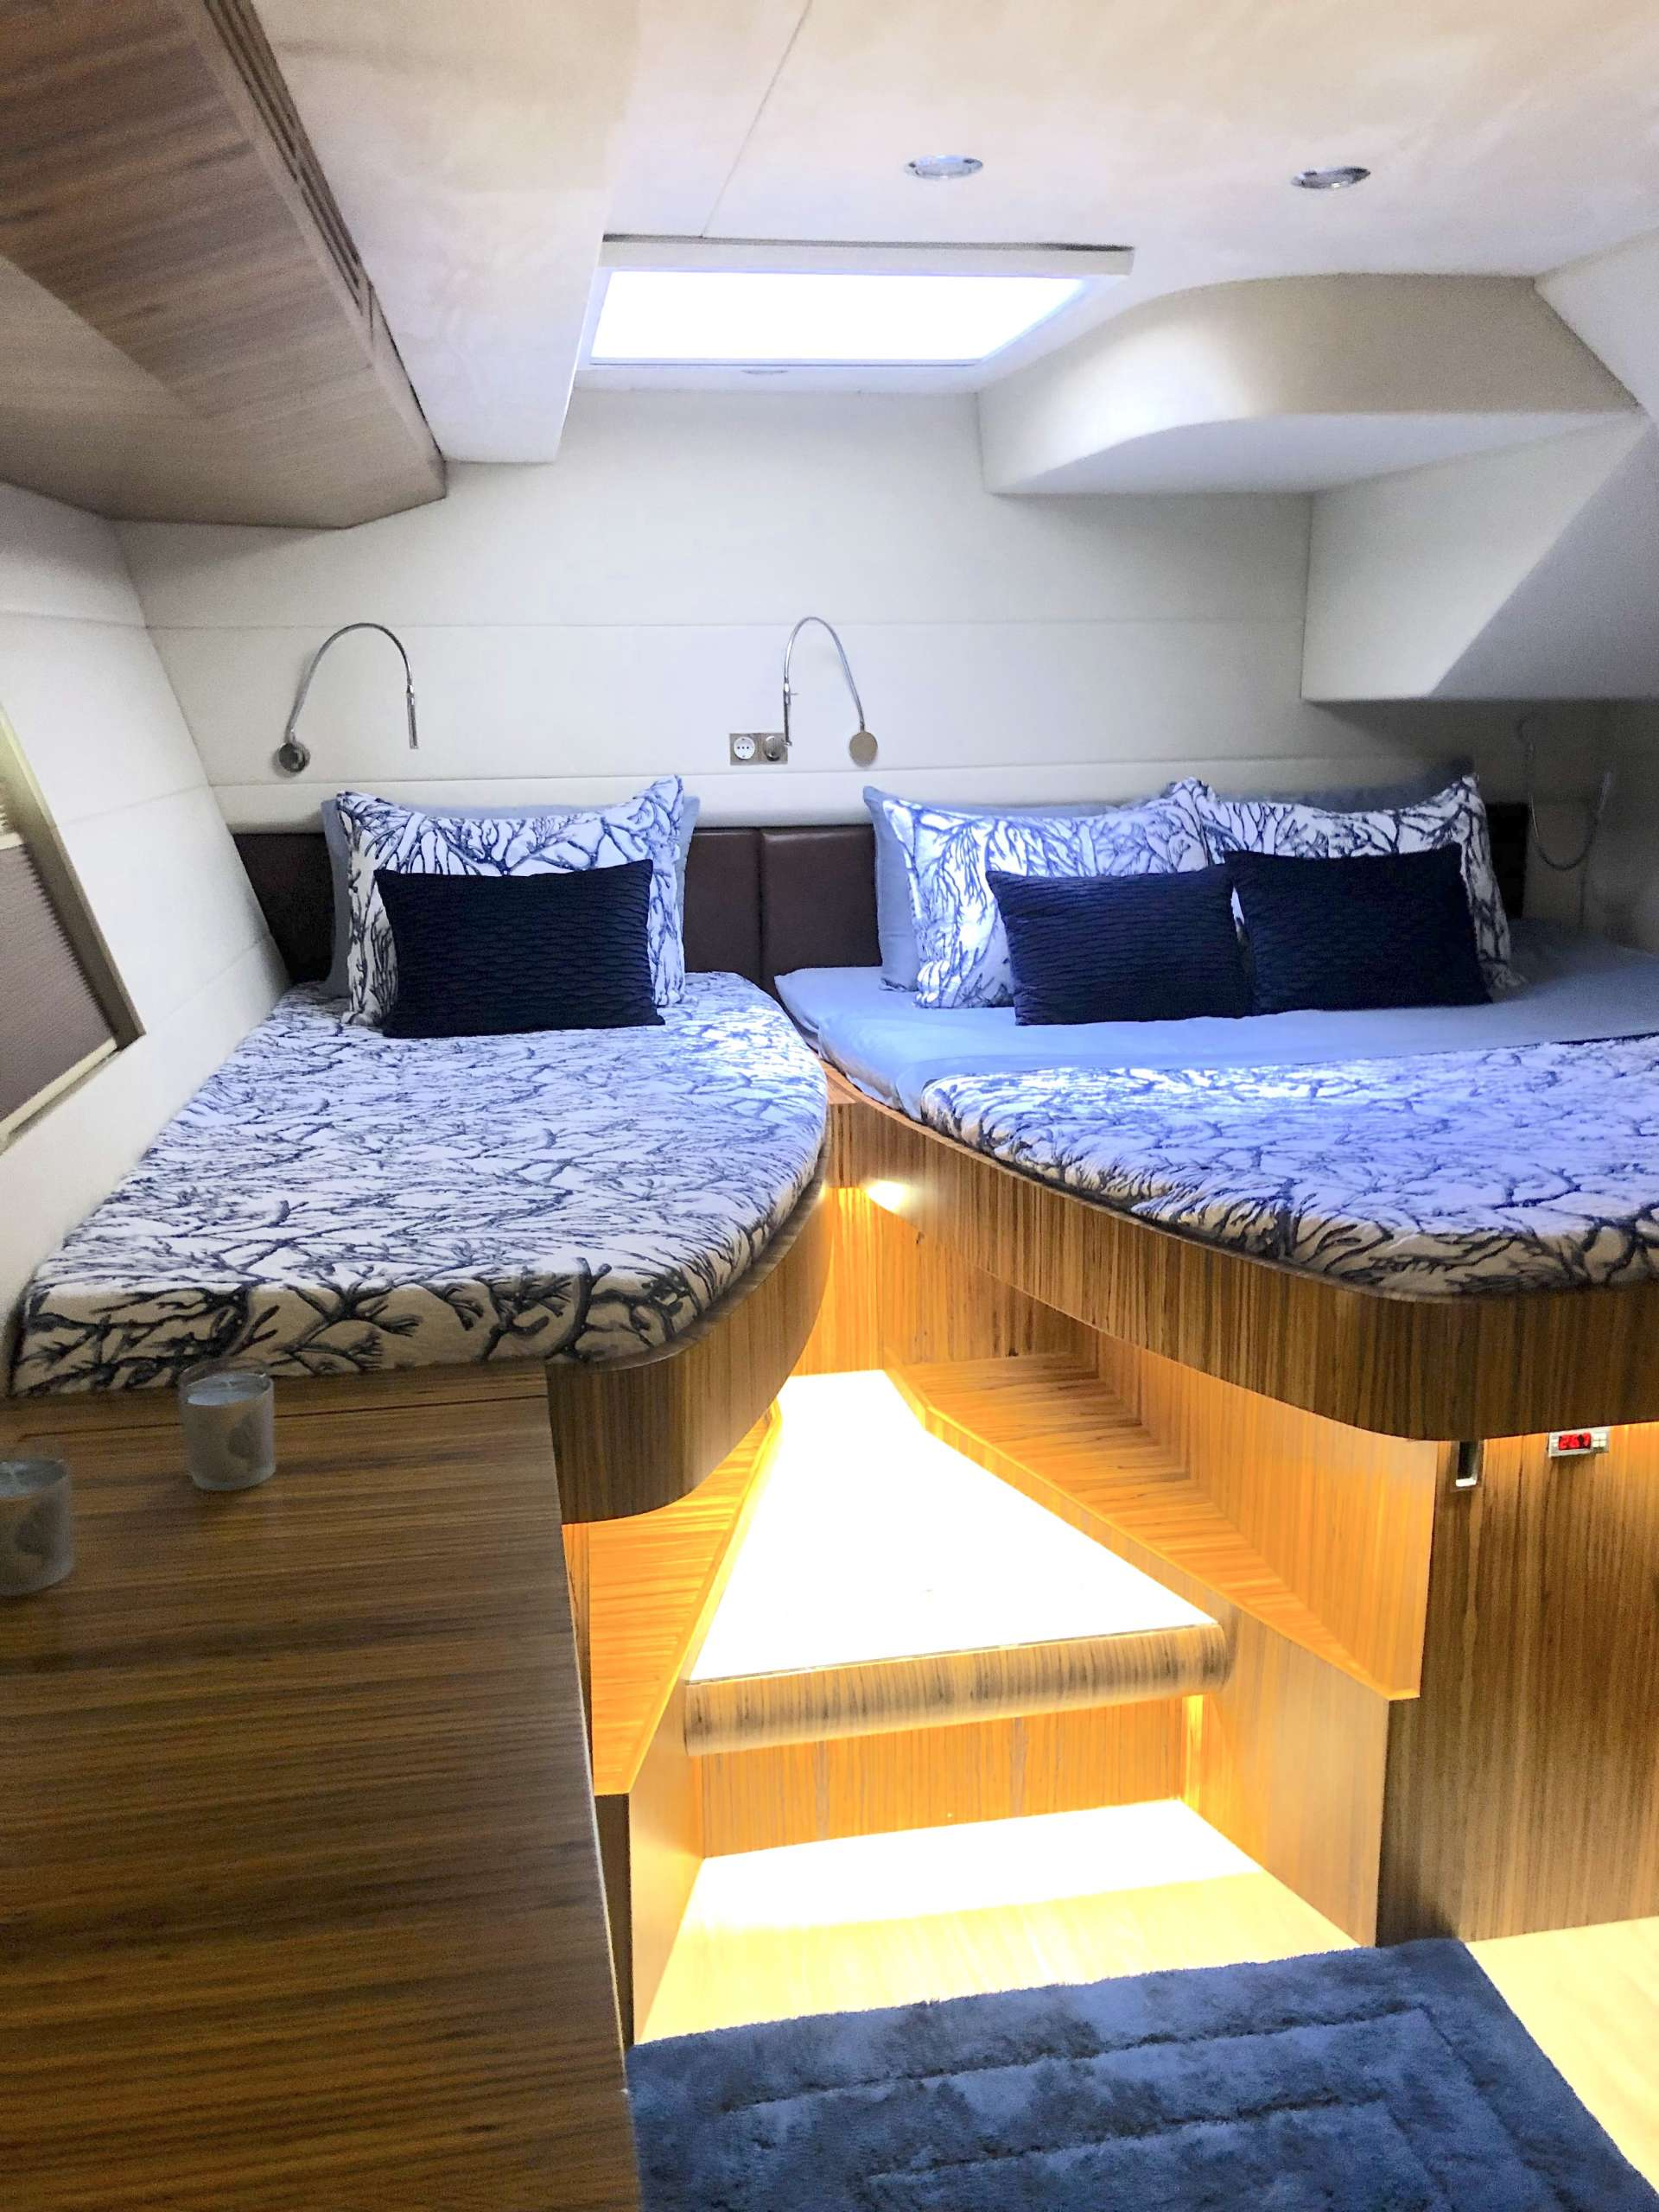 King bed with single bed